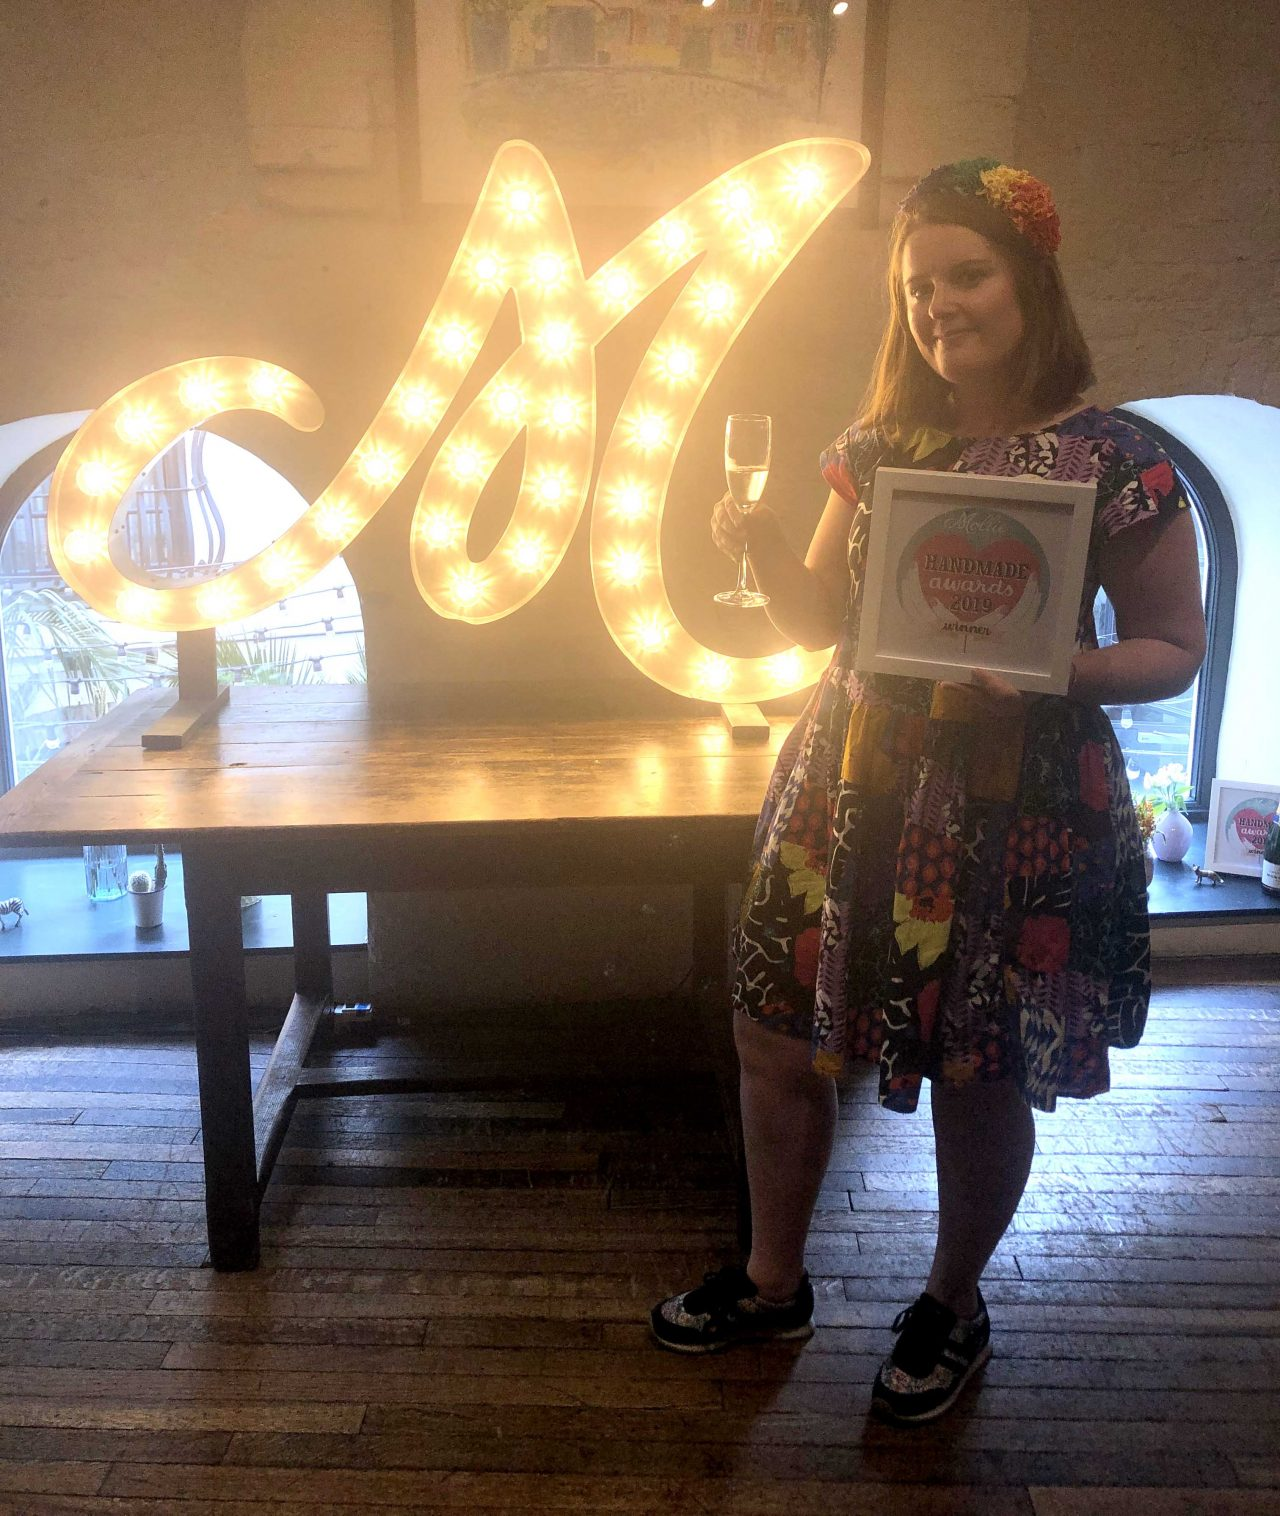 Elspeth Jackson with her Mollie Makes award at the Handmade Awards 2019